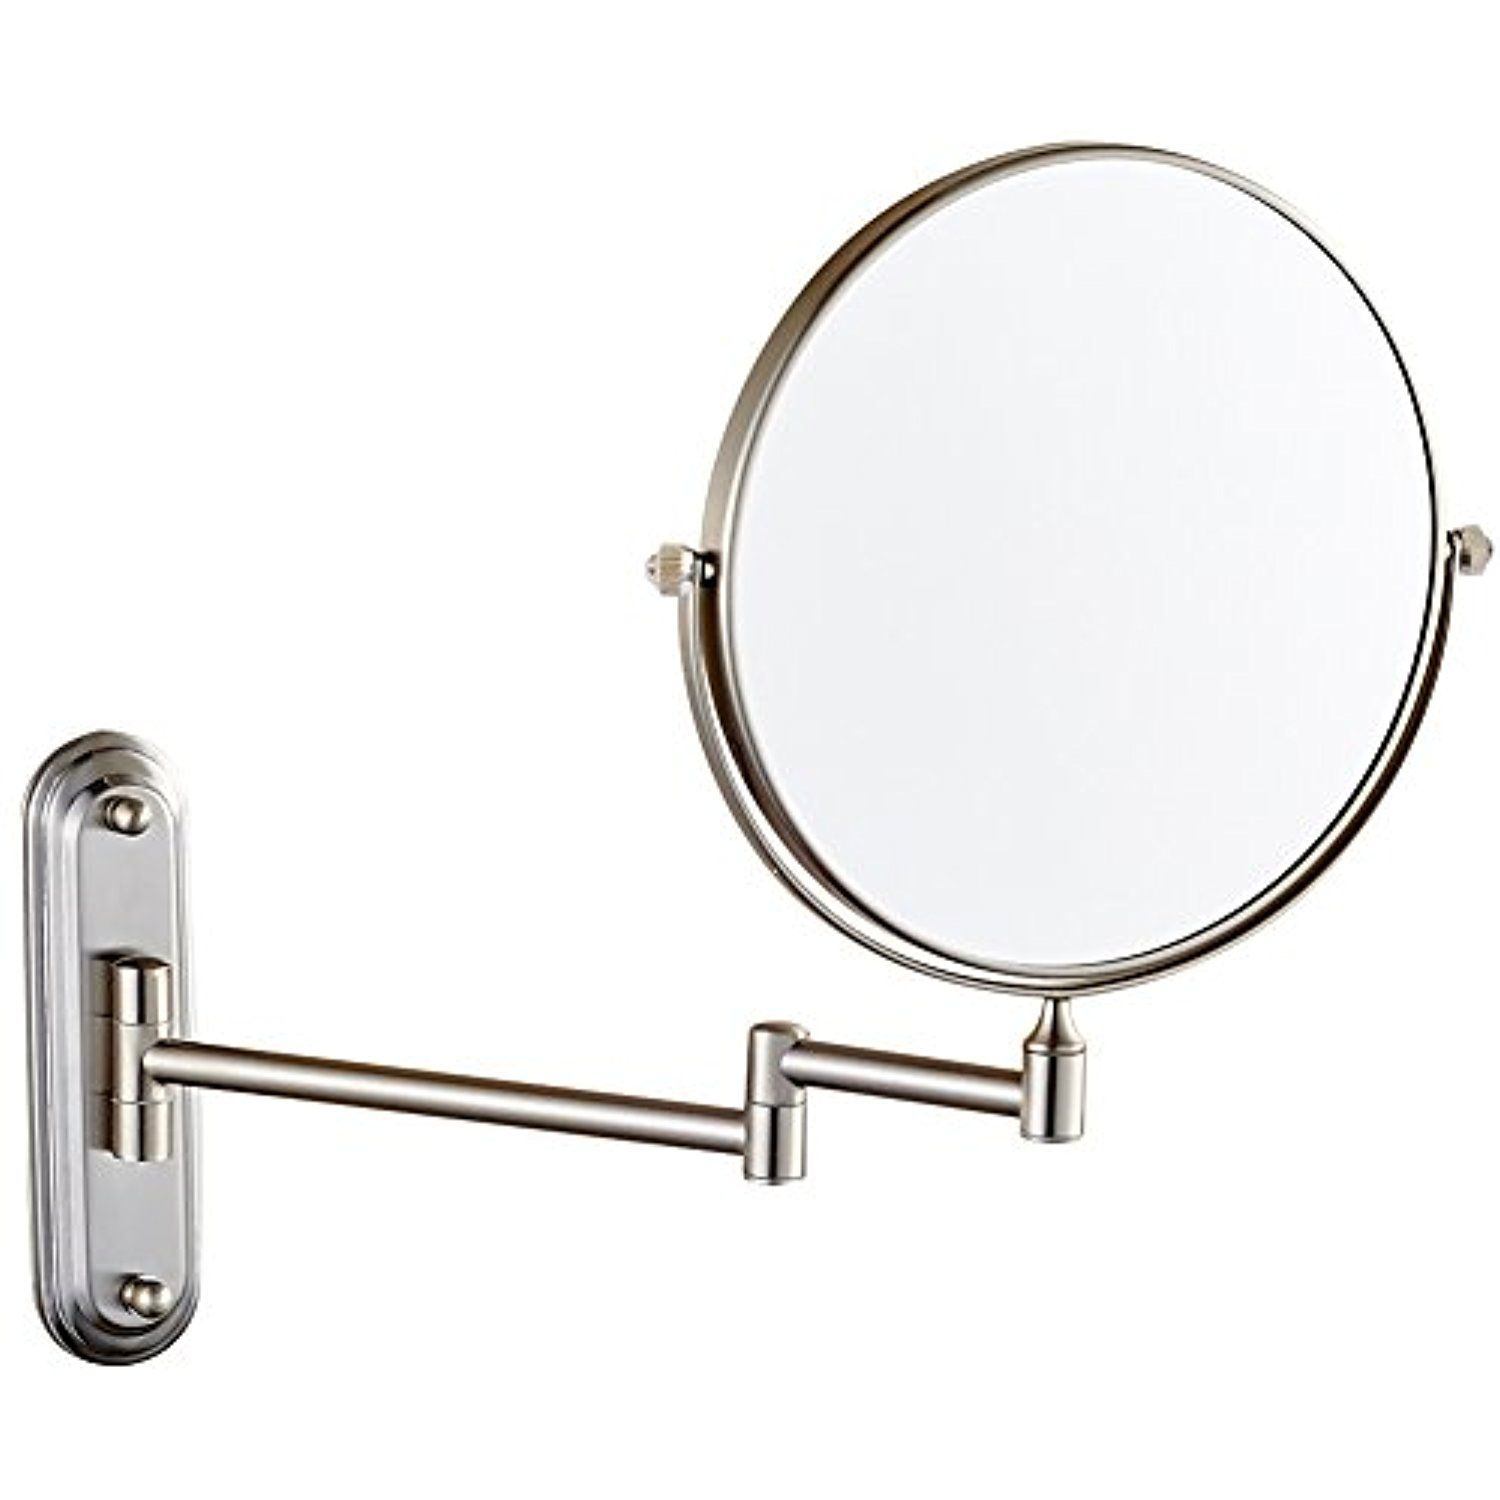 Gurun Wall Mount Makeup Mirror With 10x Magnification Brushed Nickel Finish 8 Inch Two Sided Wall Mounted Makeup Mirror Wall Mounted Mirror Magnifying Mirror